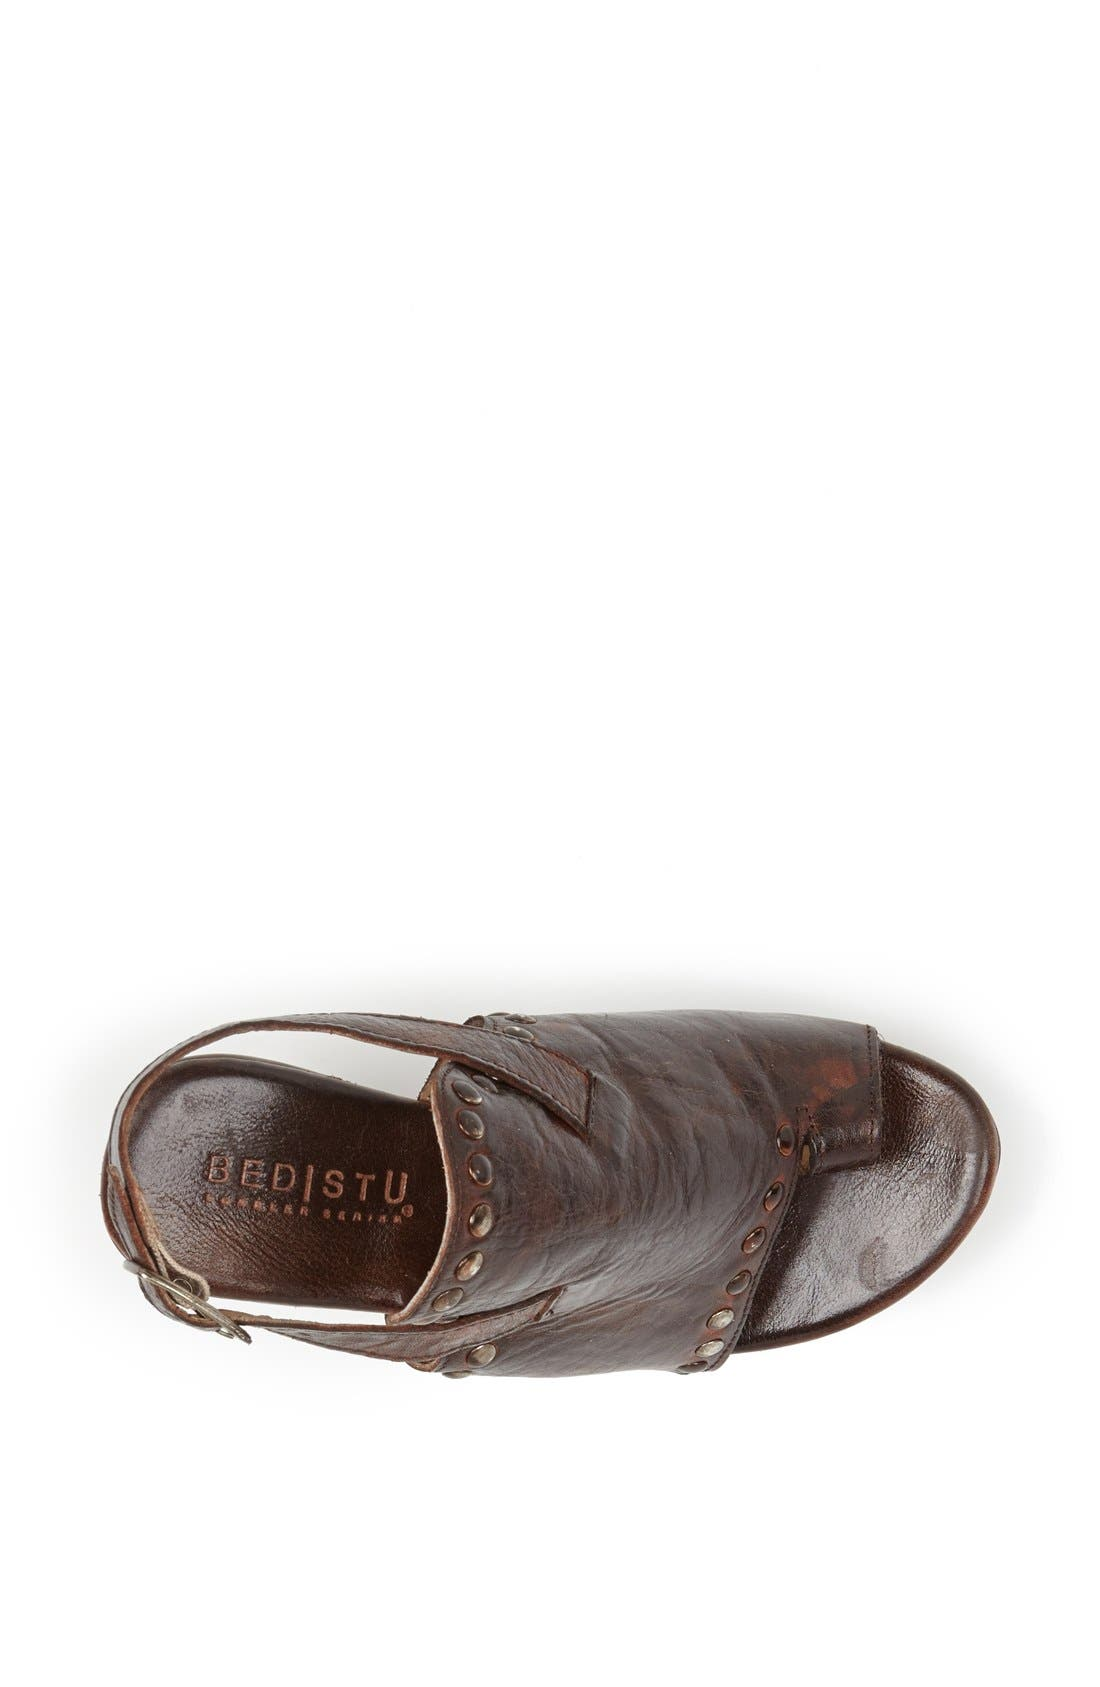 Alternate Image 2  - Bed Stu 'Joann' Leather Sandal